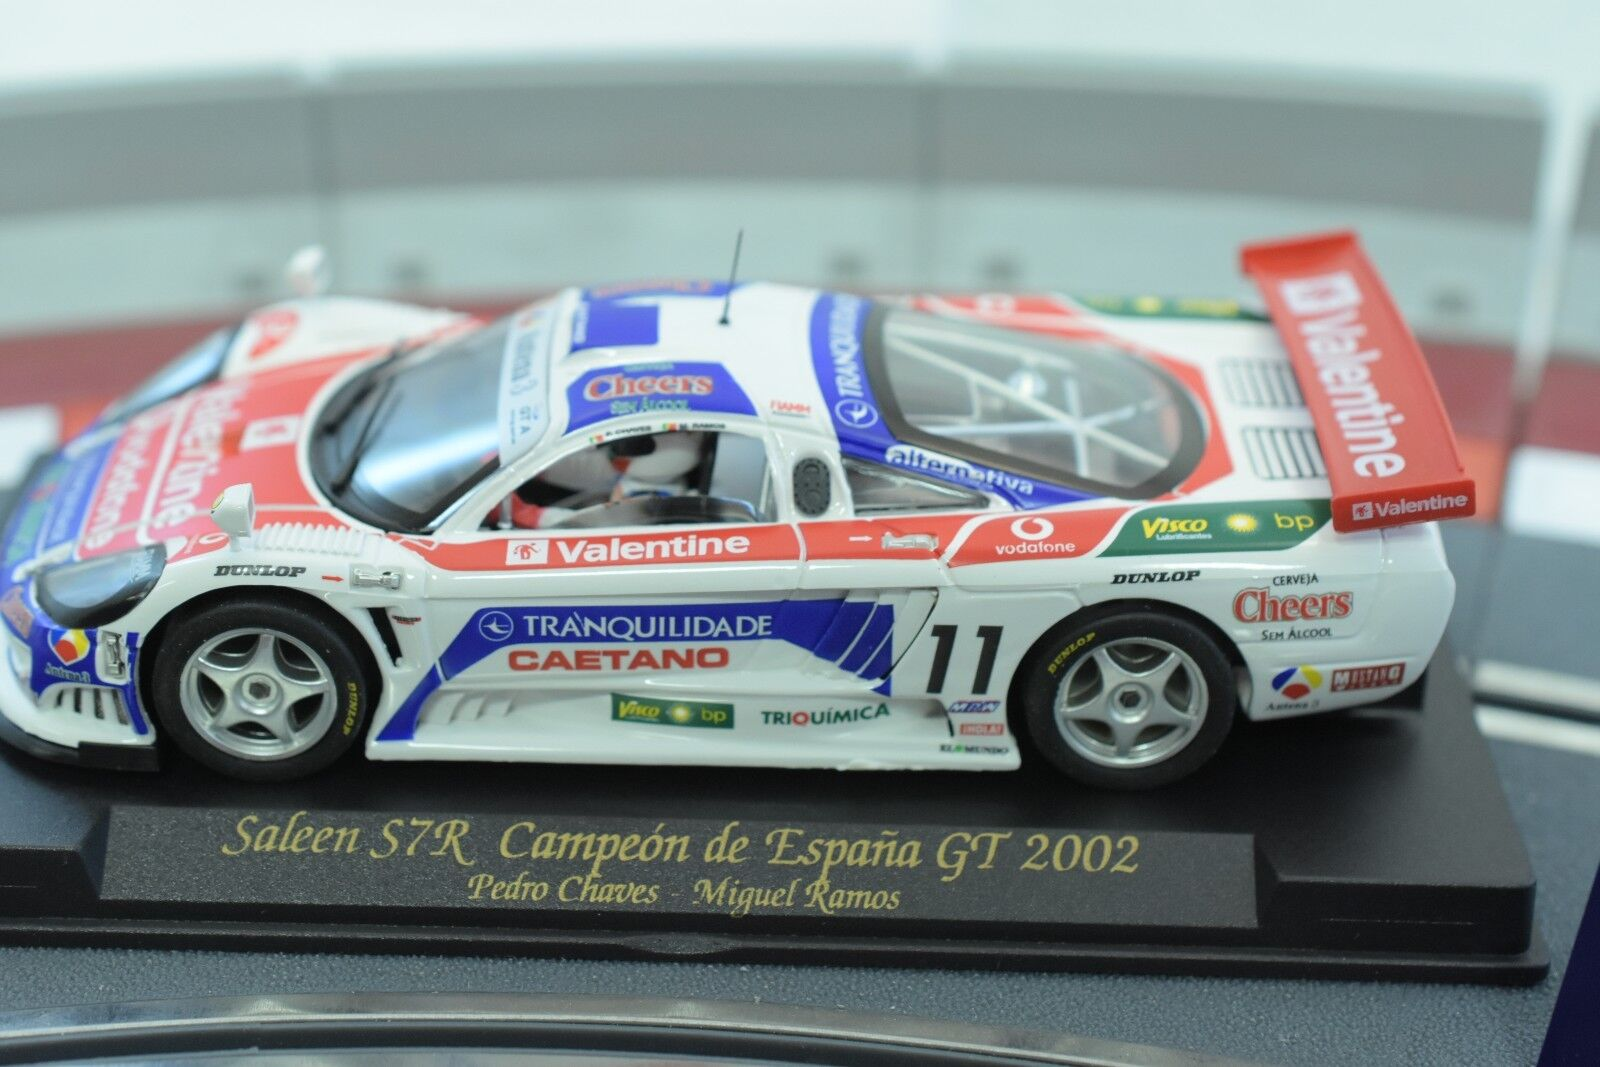 88026 FLY CAR MODEL 1 32 SLOT CAR SALEEN S7R CAMPEON DE ESPANA GT 2002 A-206